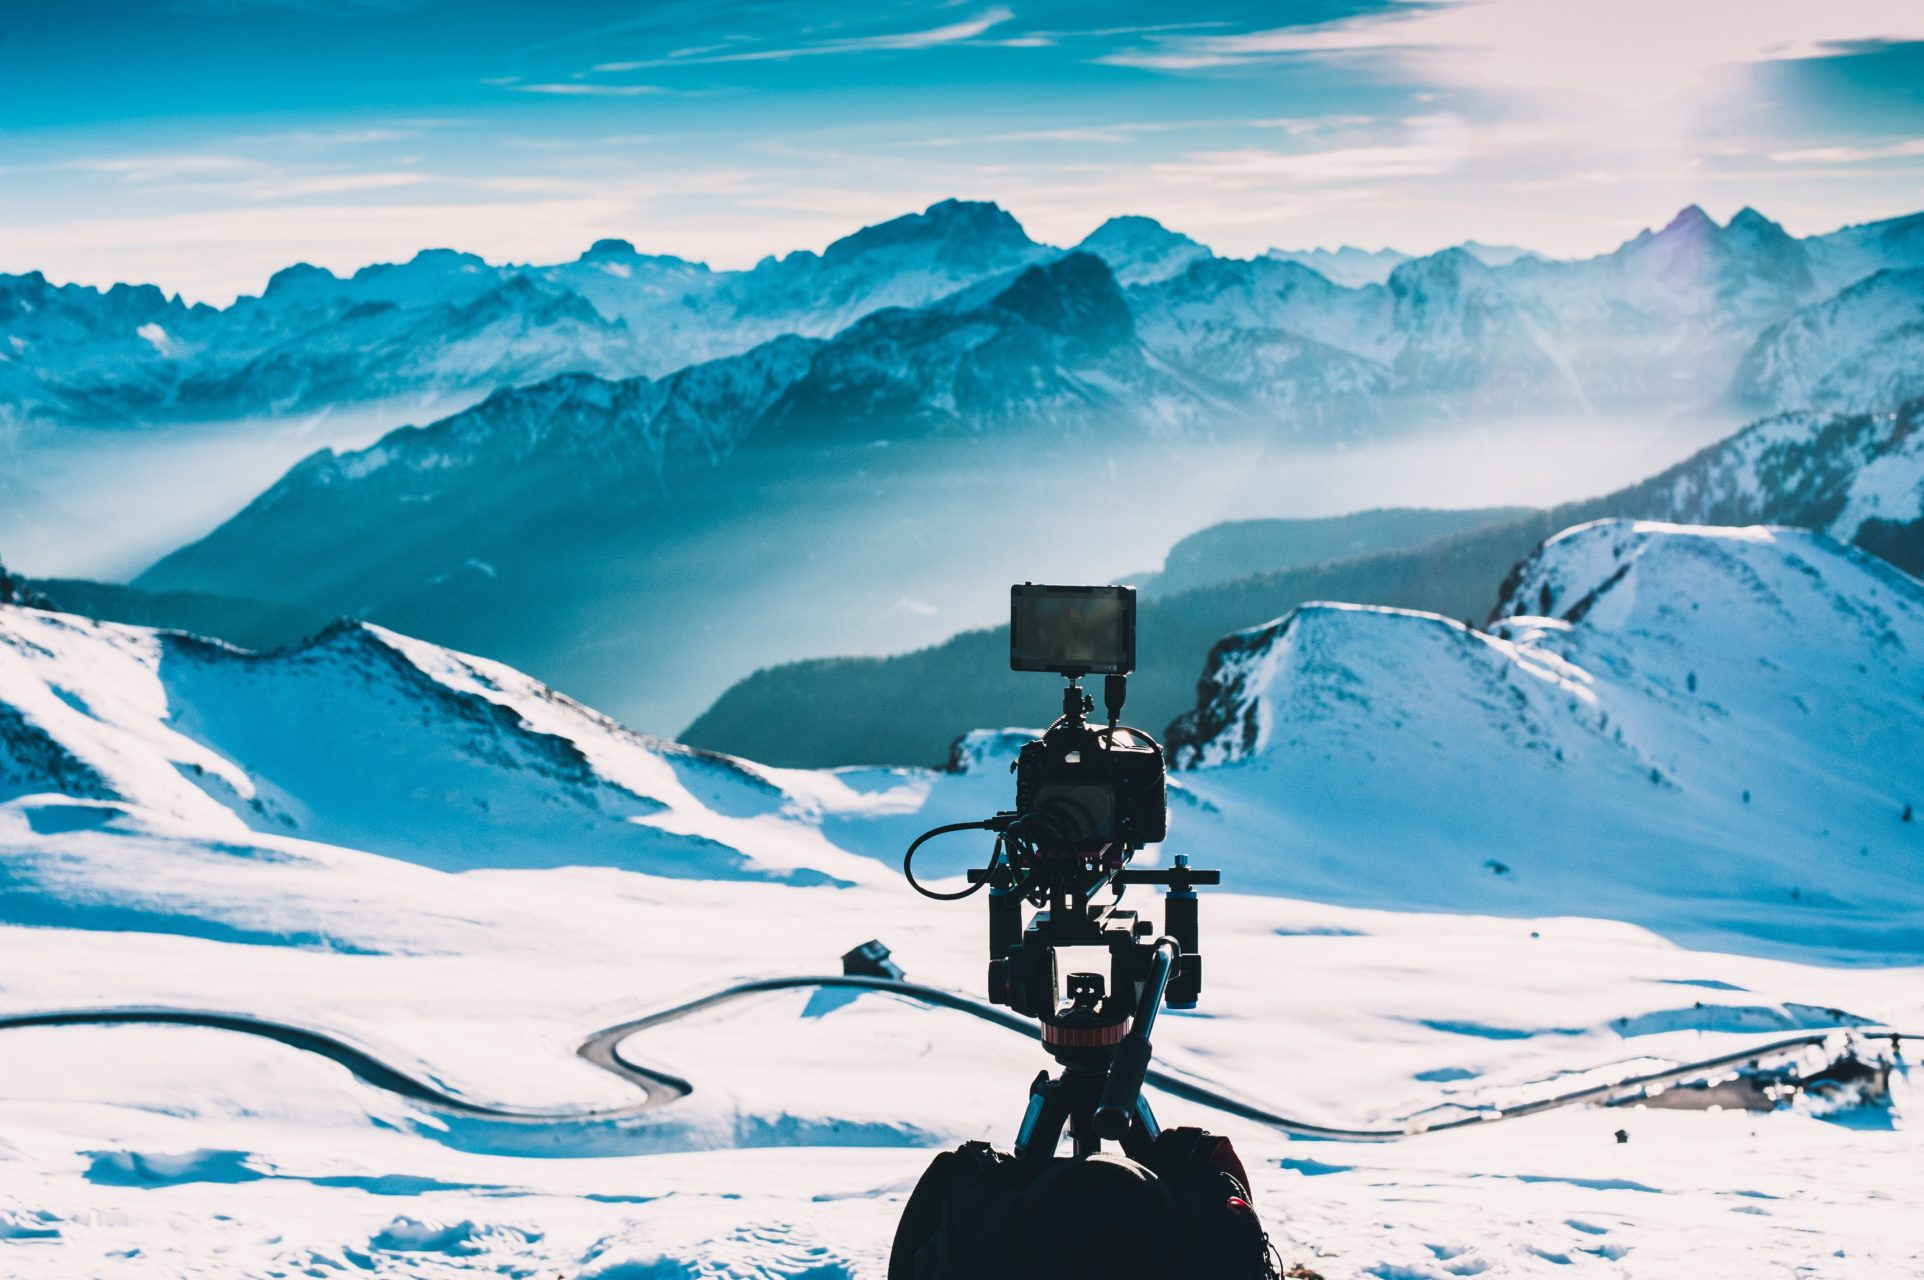 Camera tripod set up to capture the snowy mountain landscape